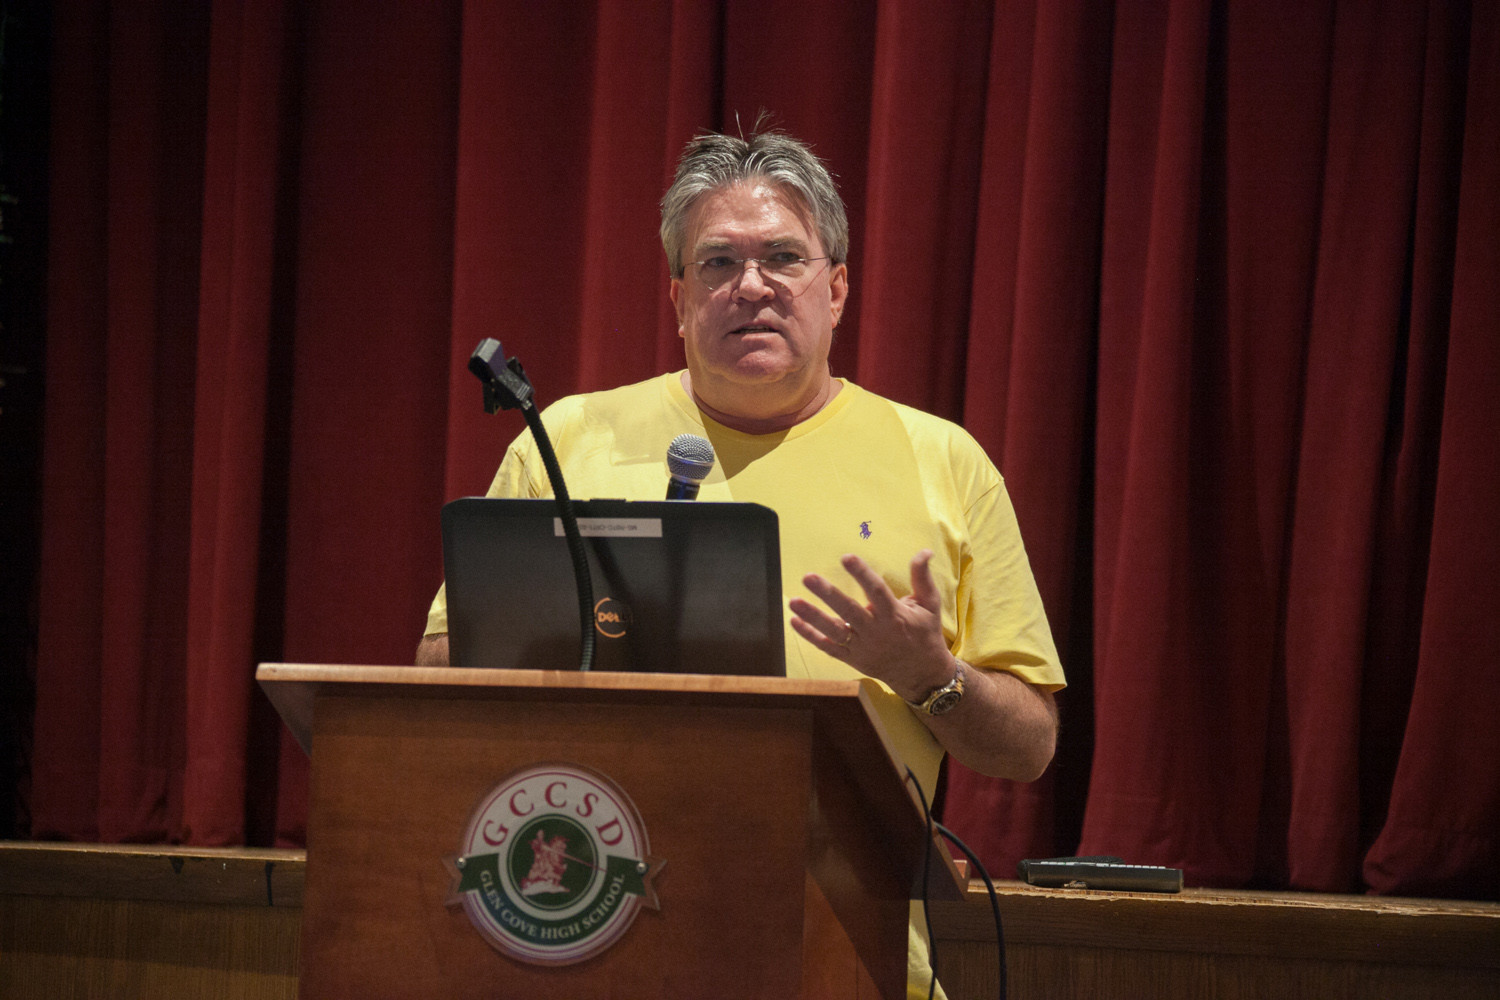 Dr. Stephen Dewey addressed community members on Oct. 24 on the dangers of substance abuse and its warning signs.